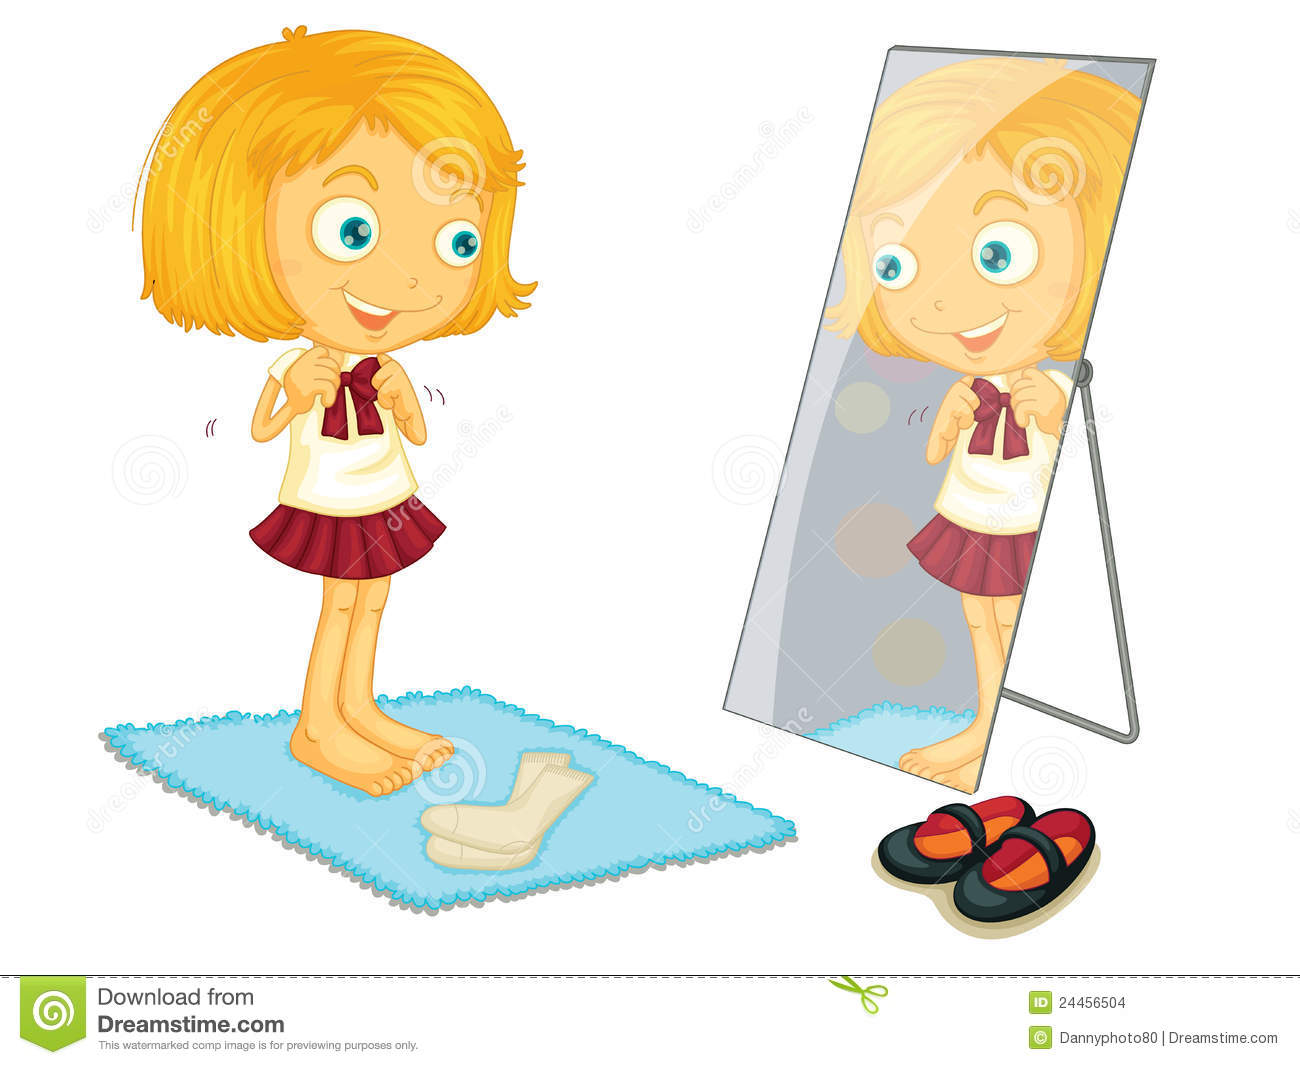 Getting Dressed Art Kids Clip Art And Ki-Getting dressed art kids clip art and kid on. Child dressing-6